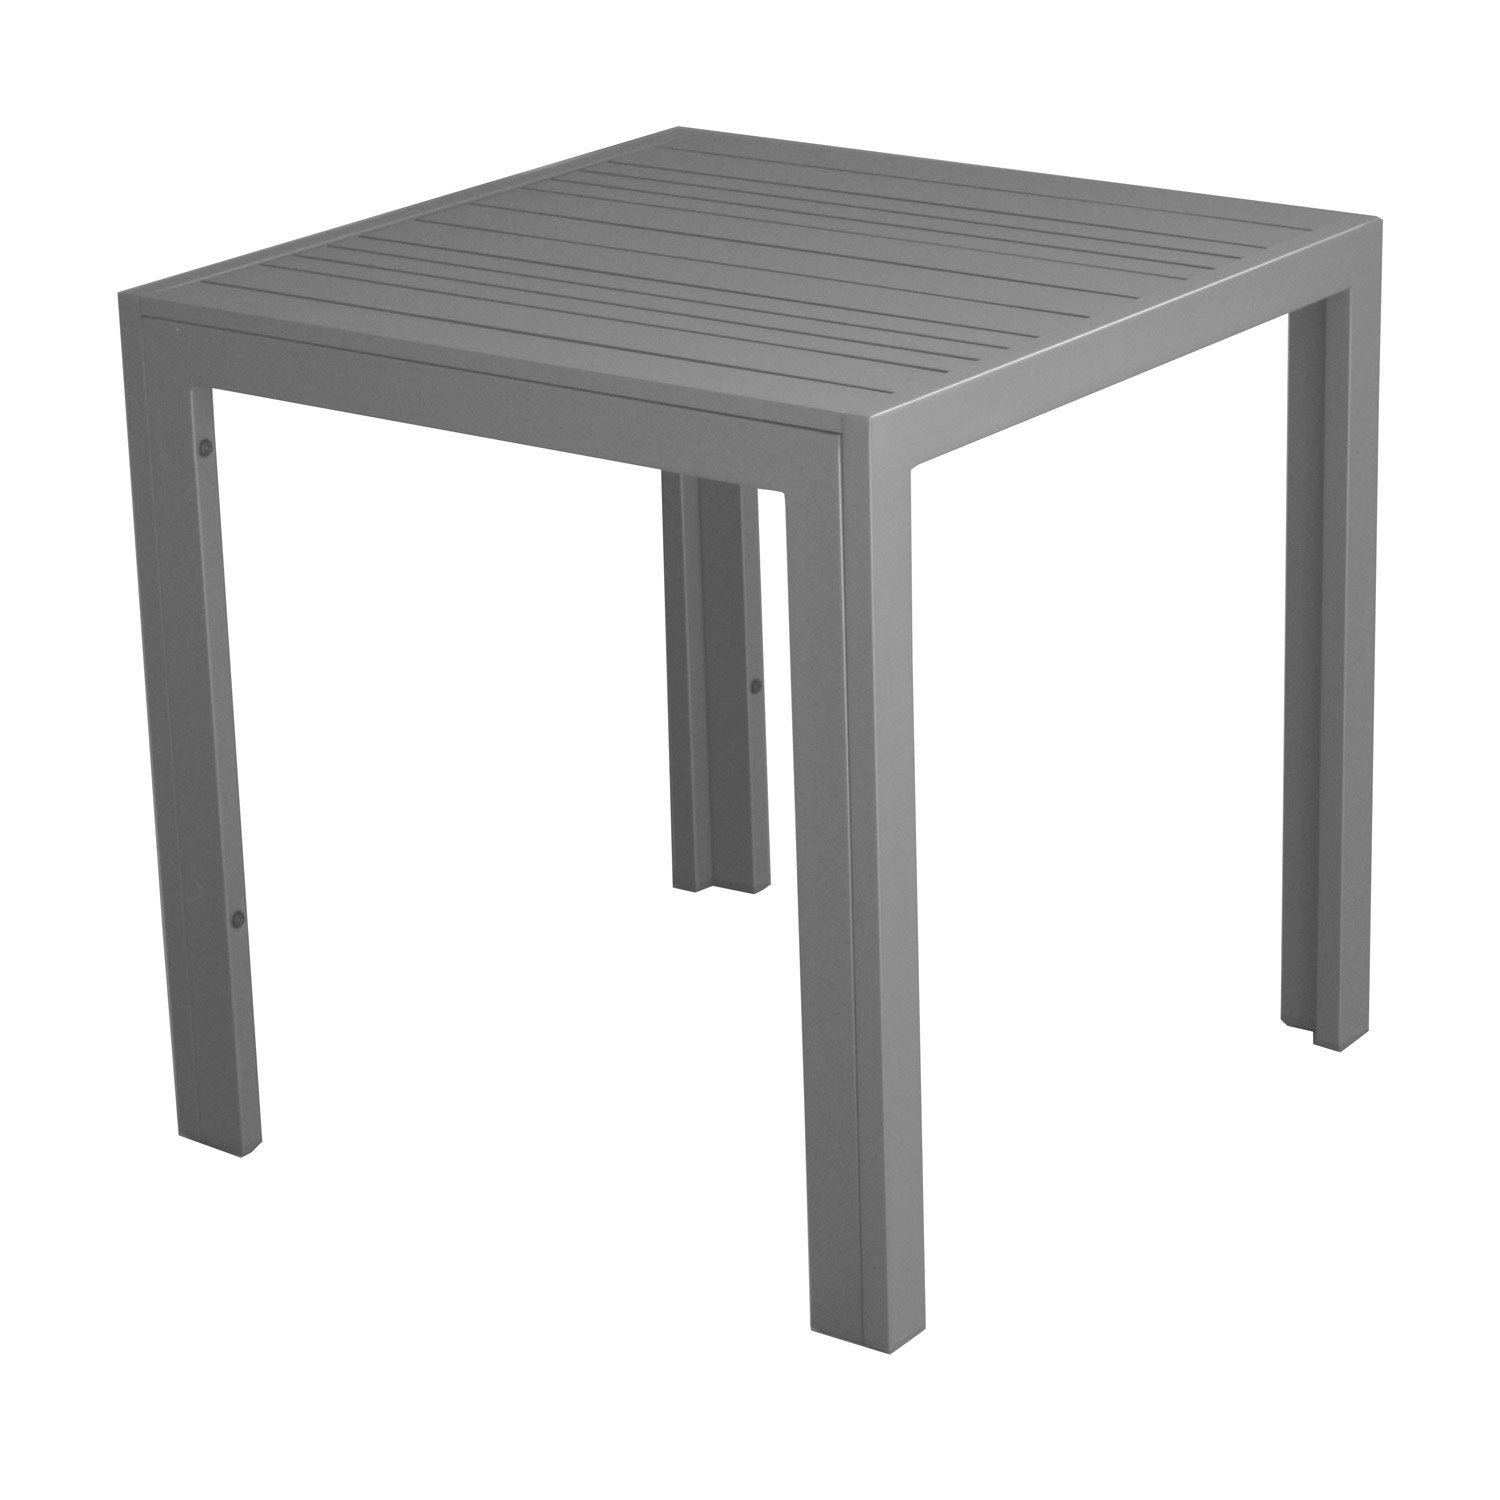 Table basse carr e gris look bois 2 personnes leroy merlin - Table basse carree bois gris ...